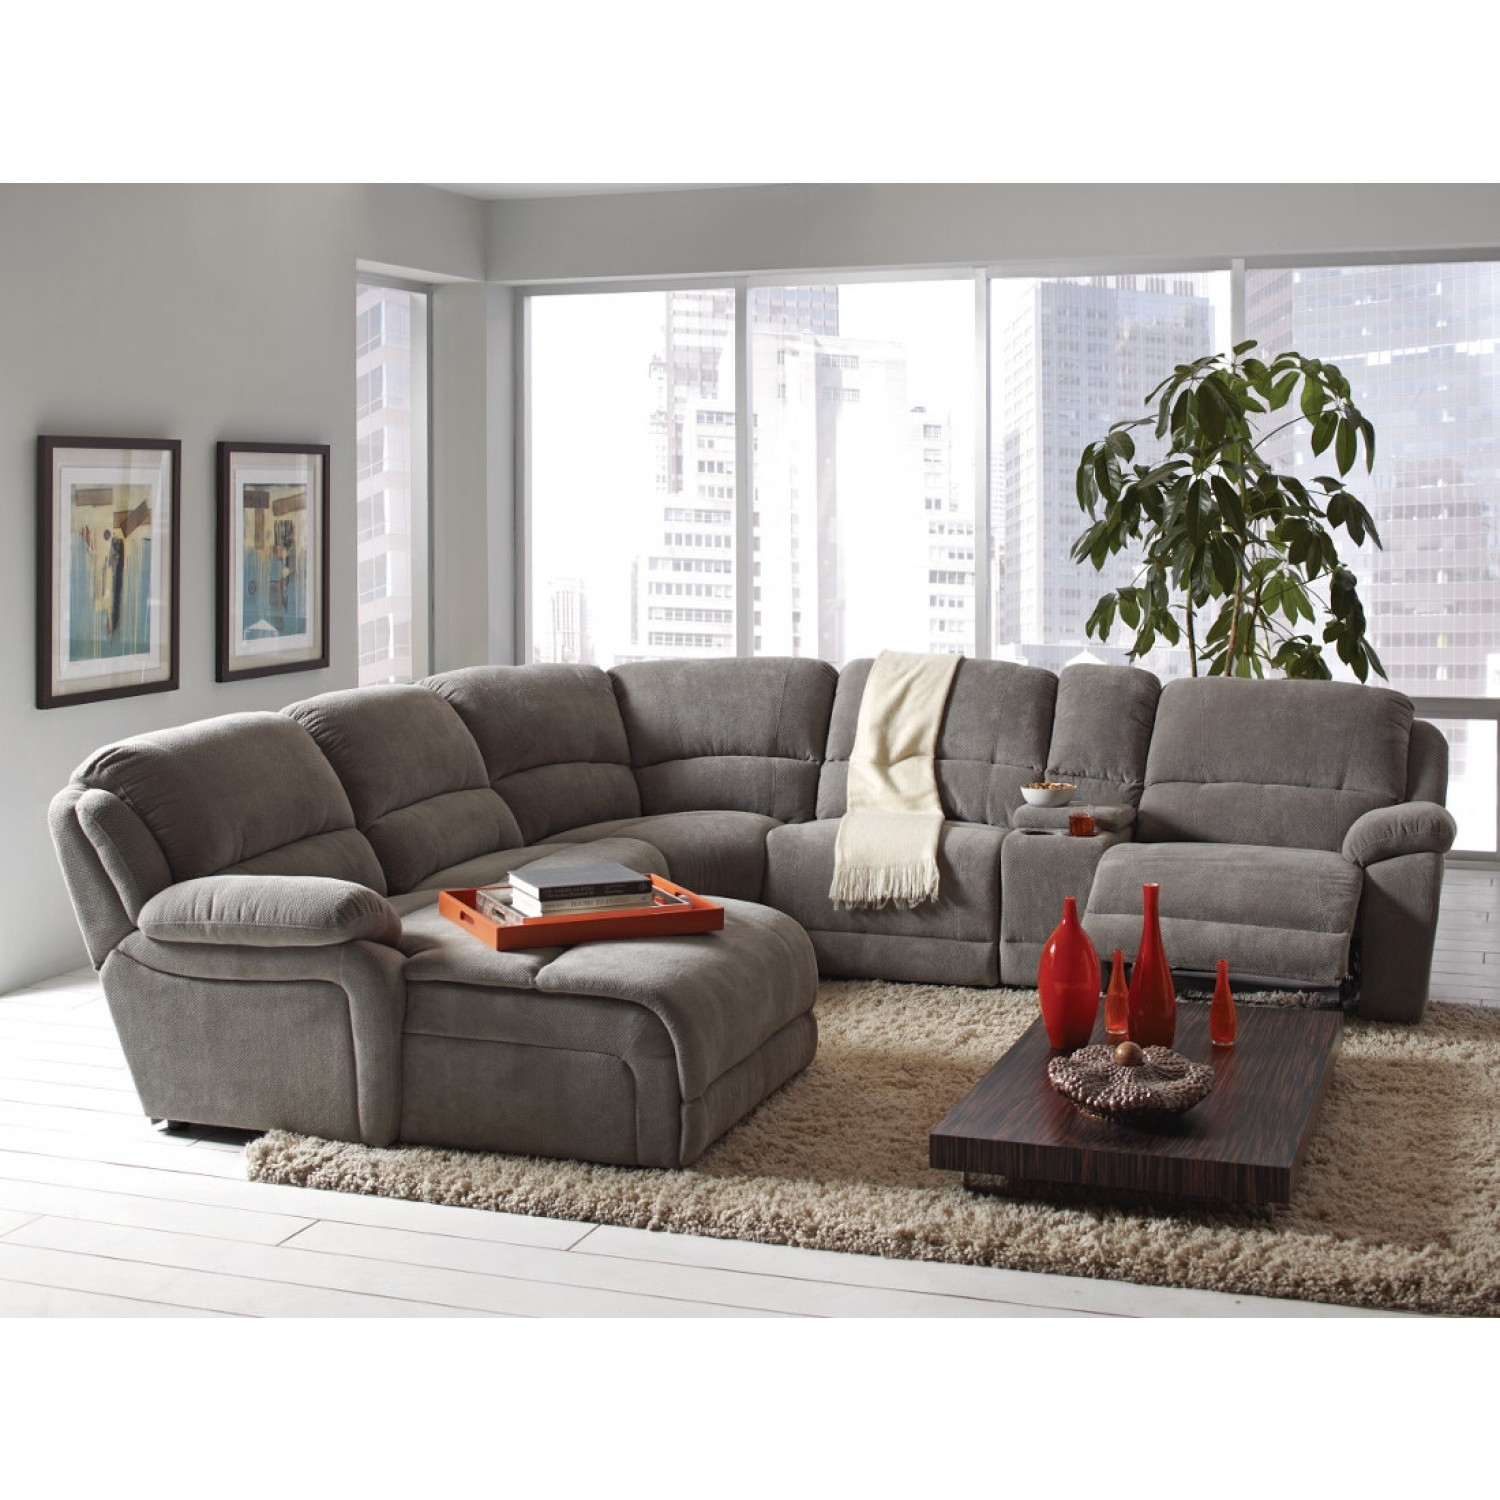 Coaster Mackenzie Silver 6 Piece Reclining Sectional Sofa With Inside Sectional Sofas That Come In Pieces (Image 4 of 10)